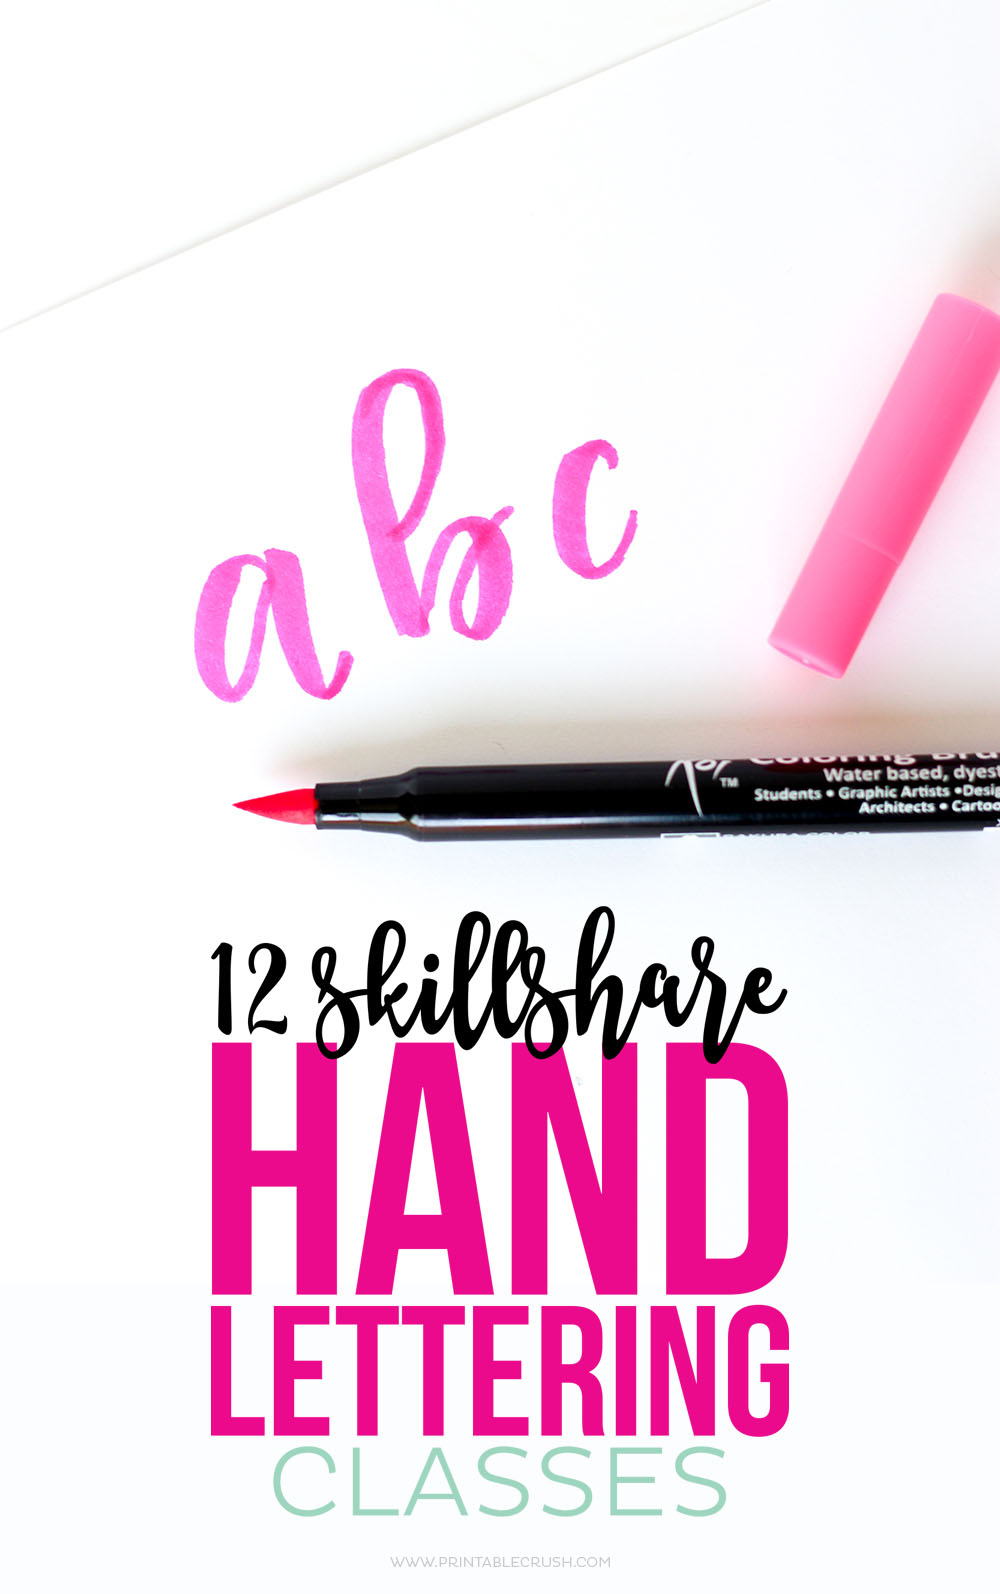 From basic lettering to finished products, learn new Hand Lettering Skills with these 12 Skillshare Classes!